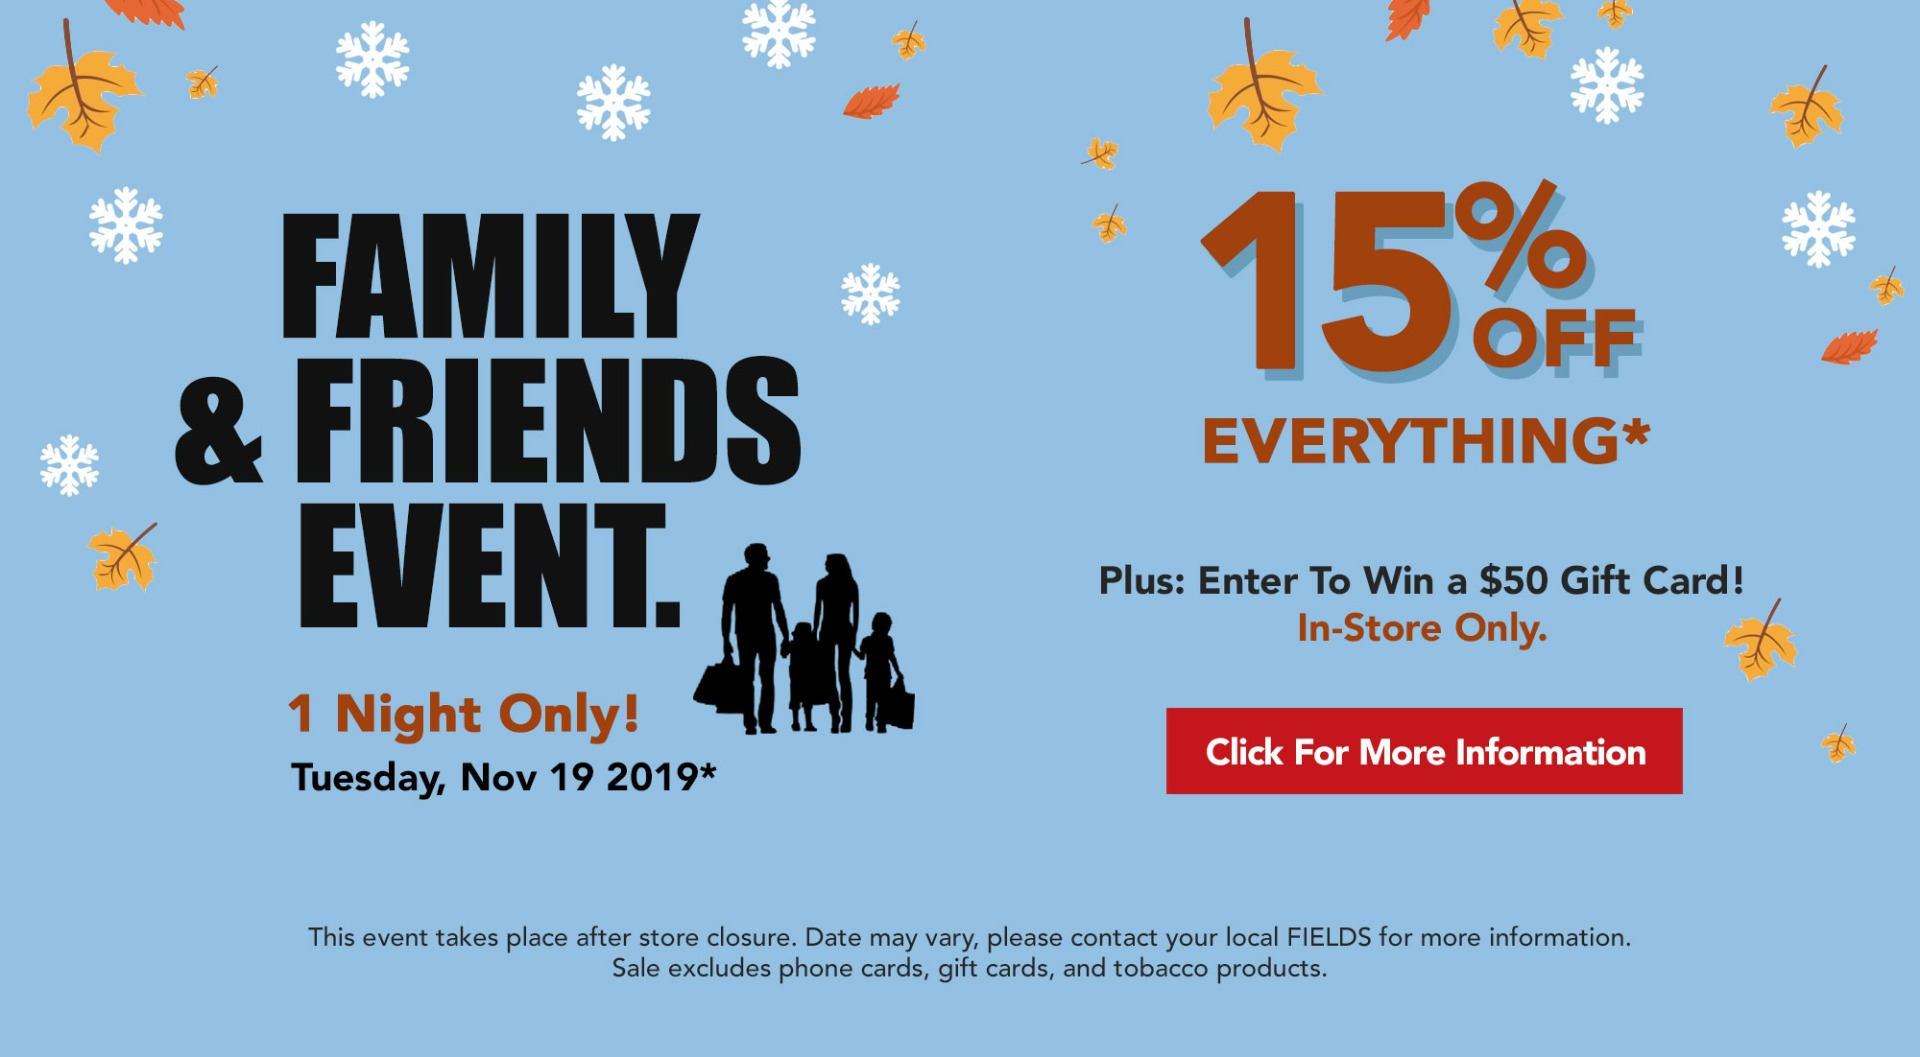 FIELDS Friends & Family Event Save 15% Off Everything